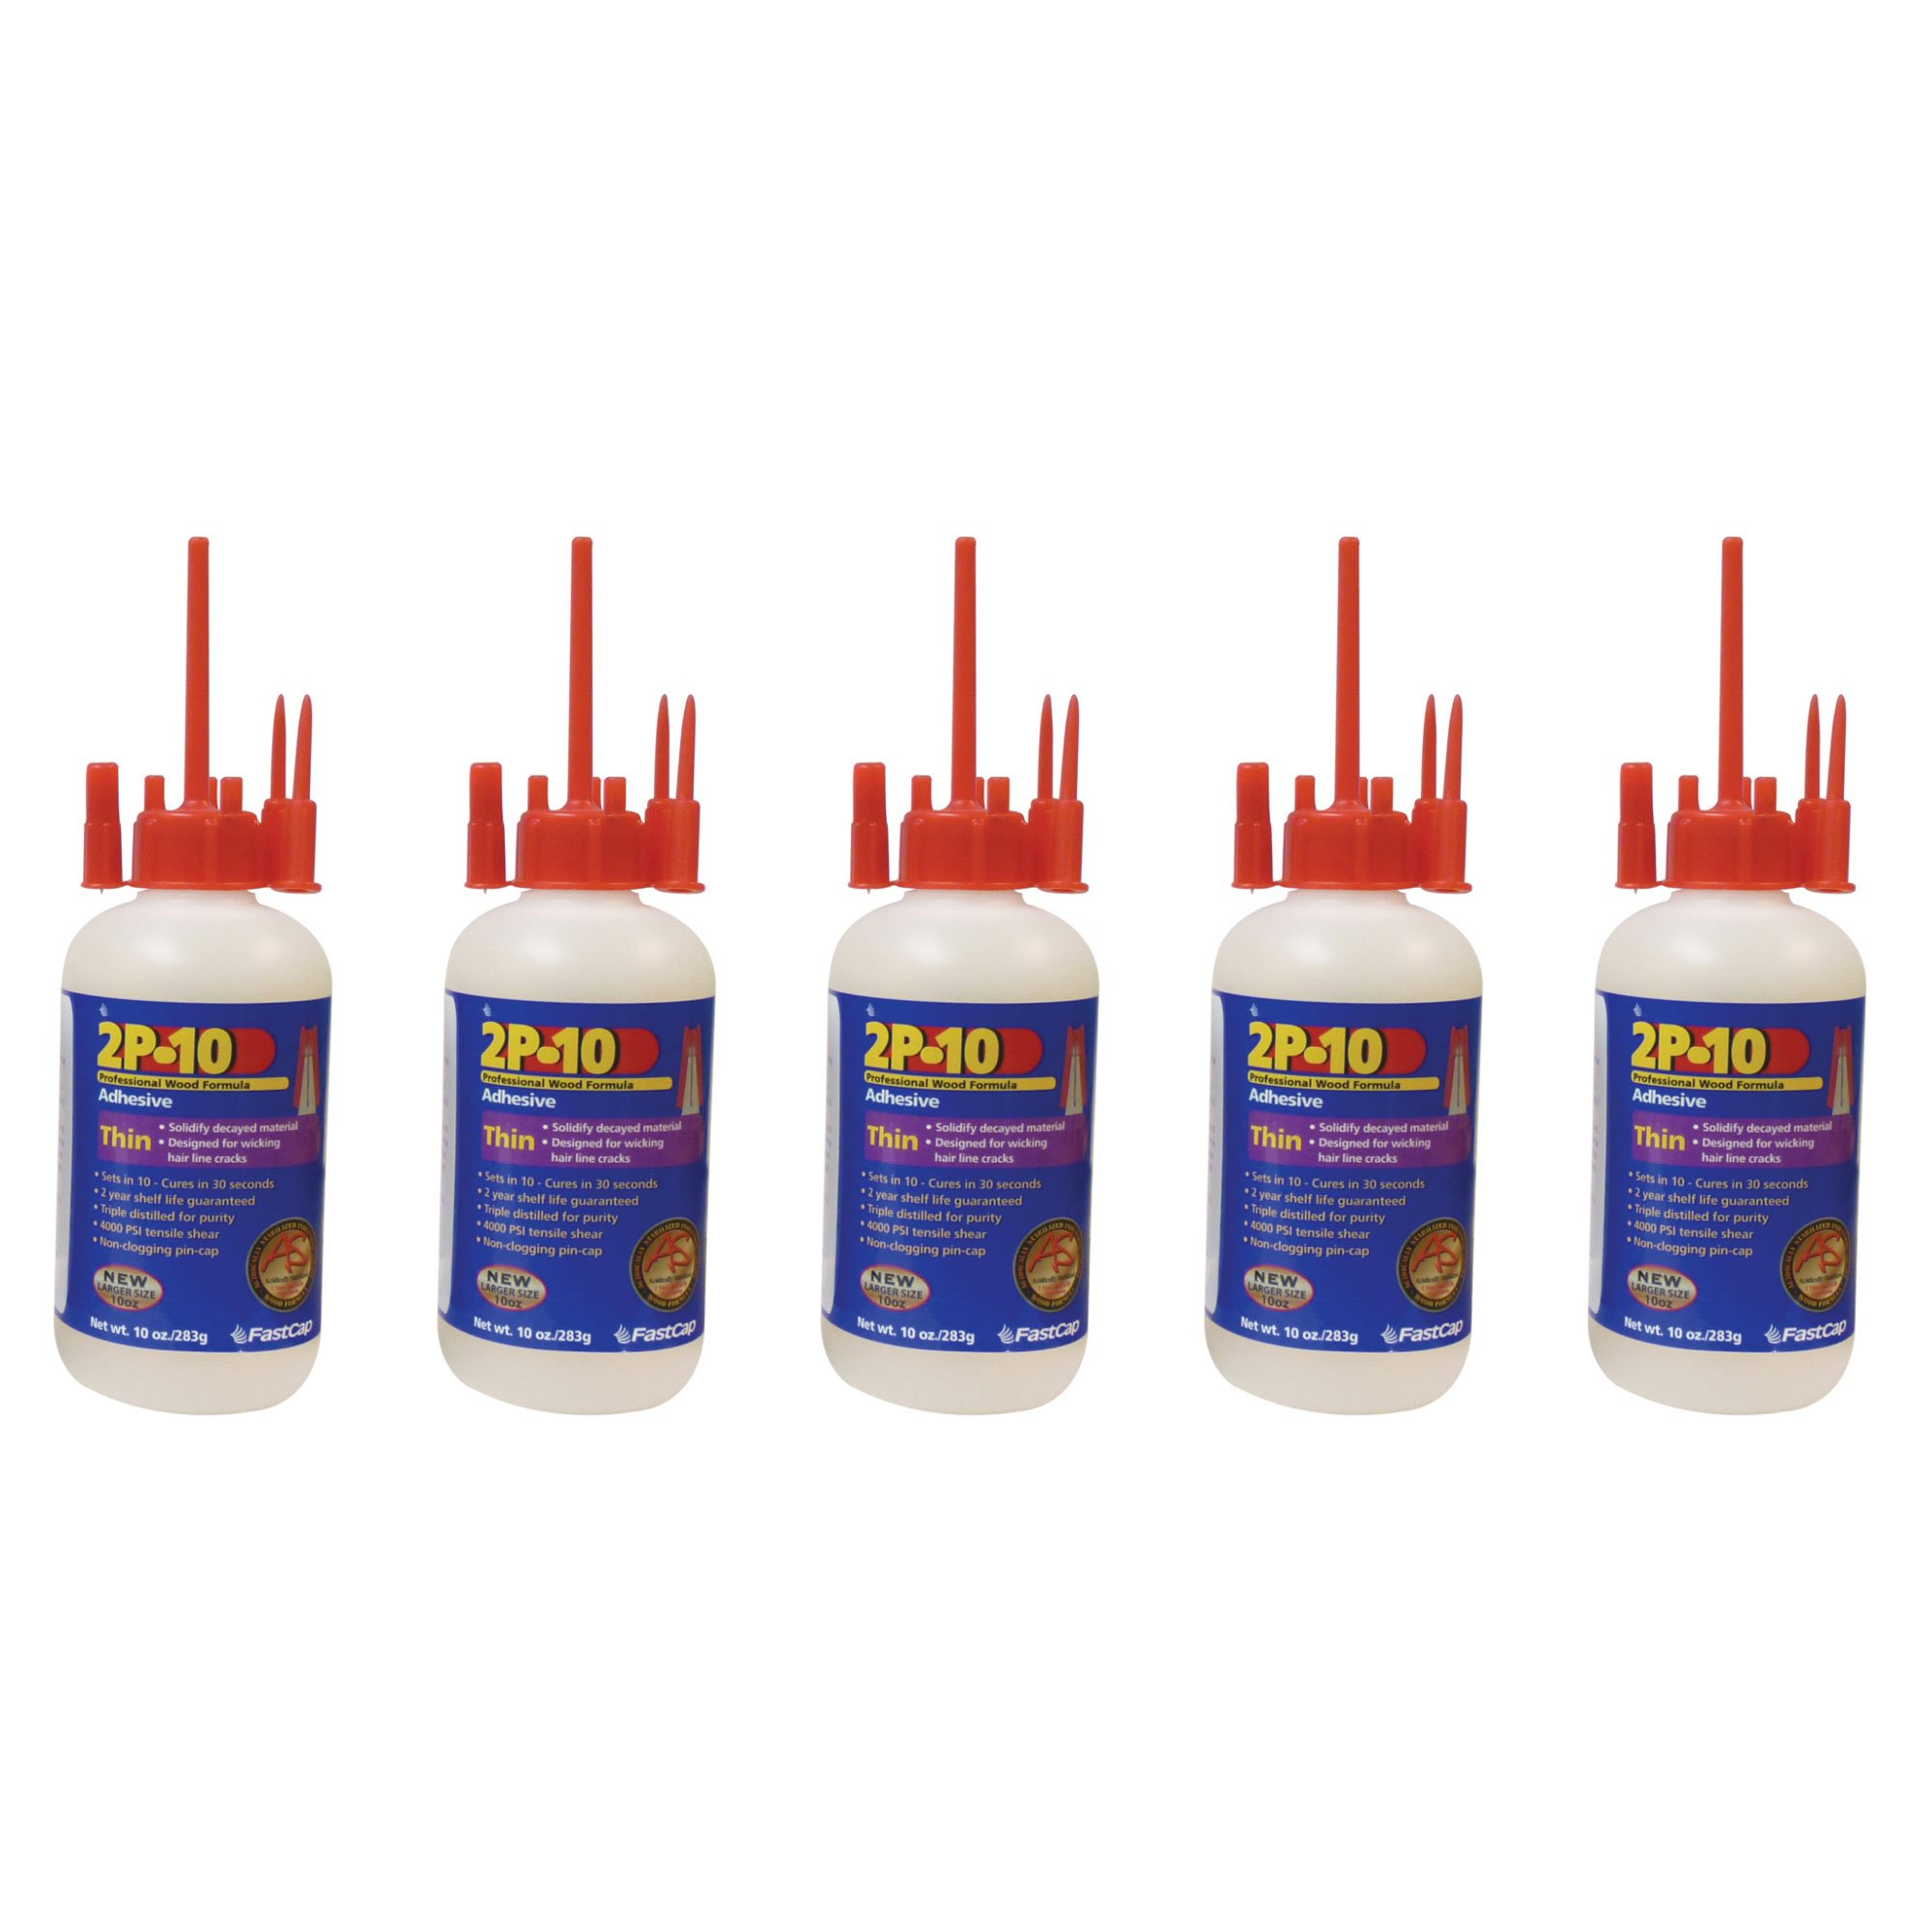 FastCap 2P-10 Professional Thin 10 oz Wood Formula Super Glue Adhesive, 5-Pack